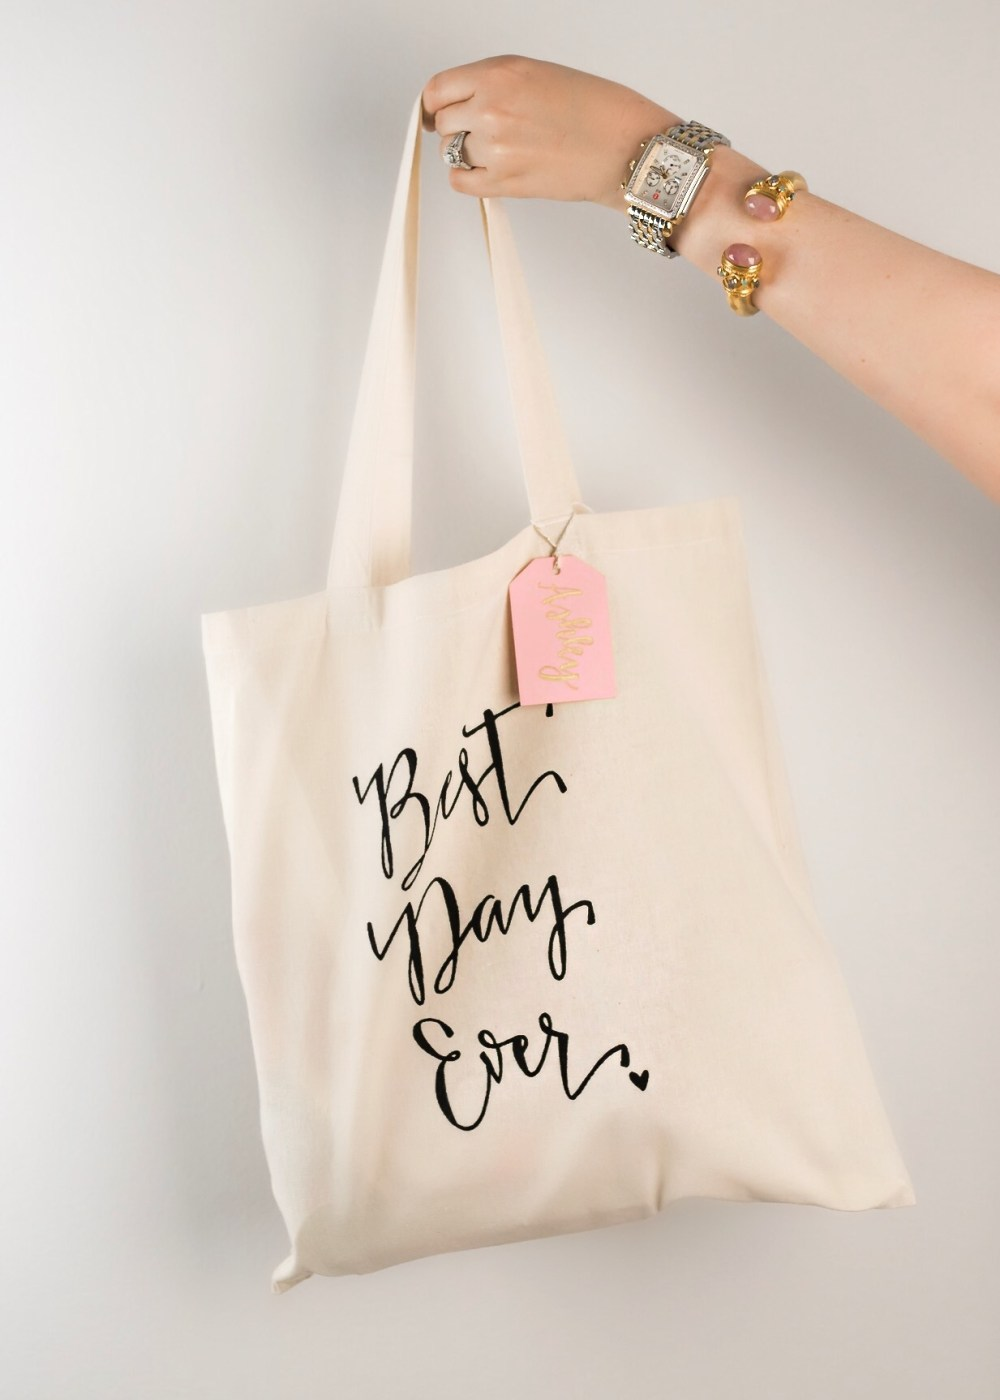 best-day-ever-tote-for-bridesmaid-gifts-fancy-things